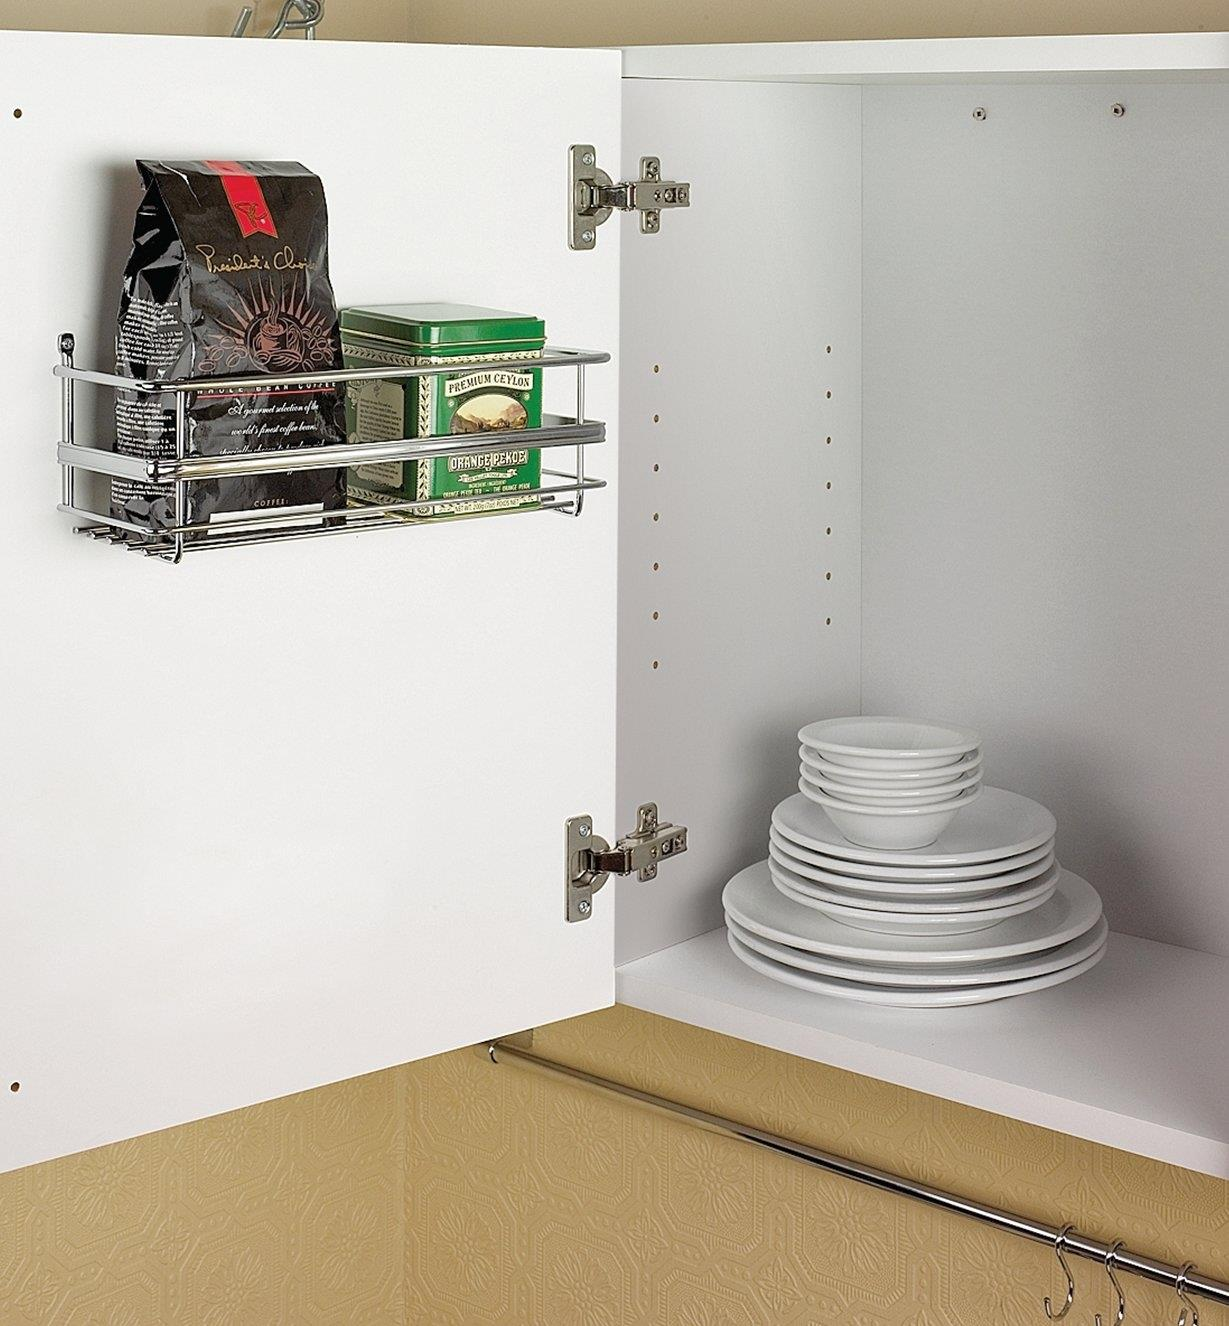 Single utility rack mounted on a cupboard door